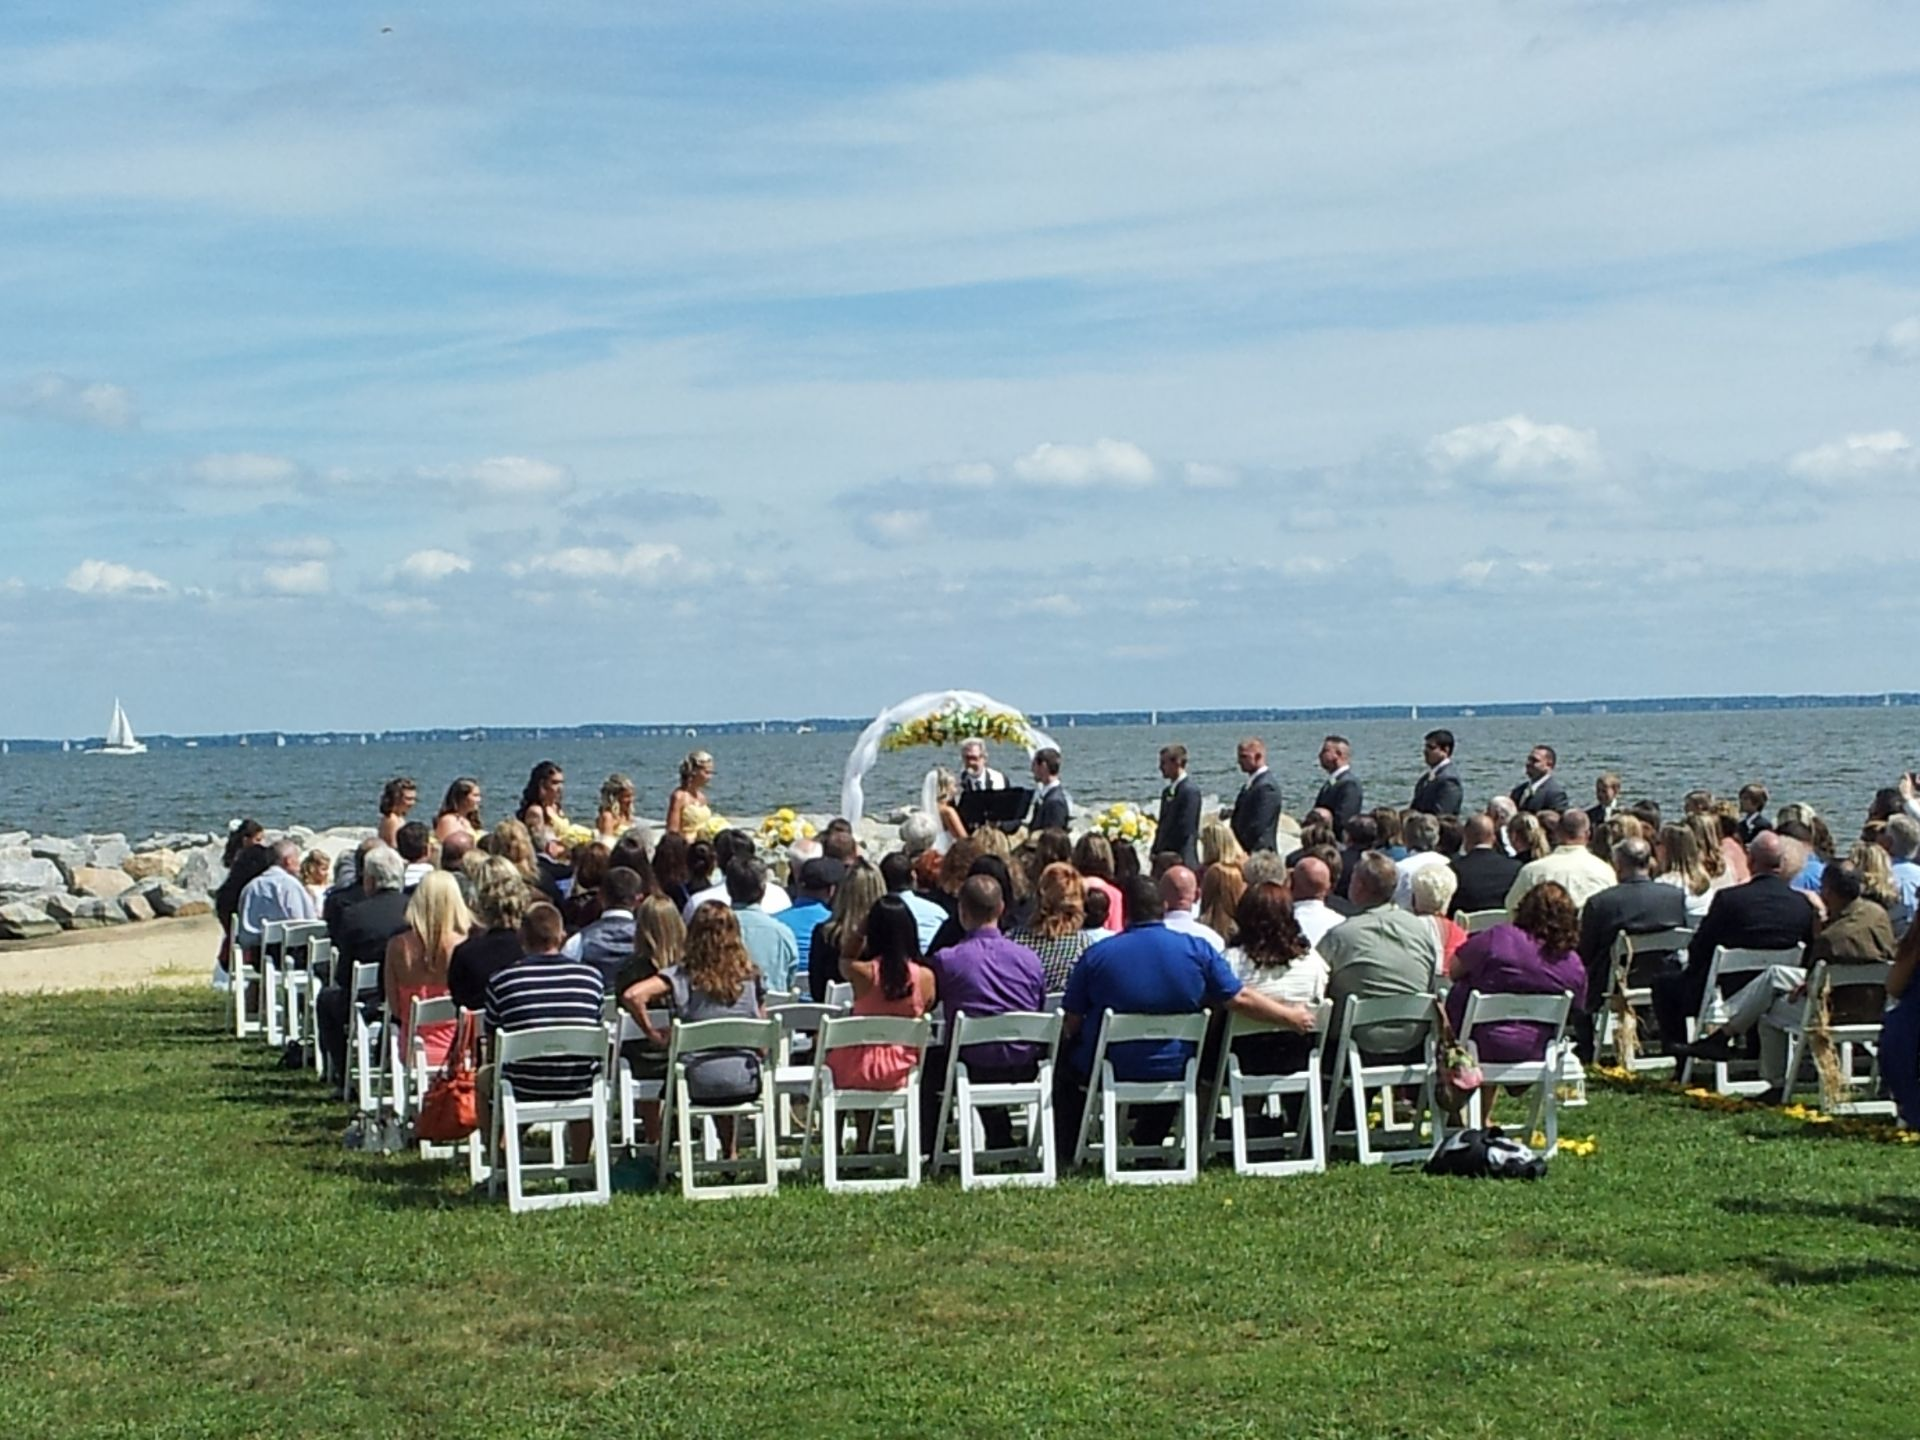 Large group of people on a lawn by the water gathered for a wedding ceremony